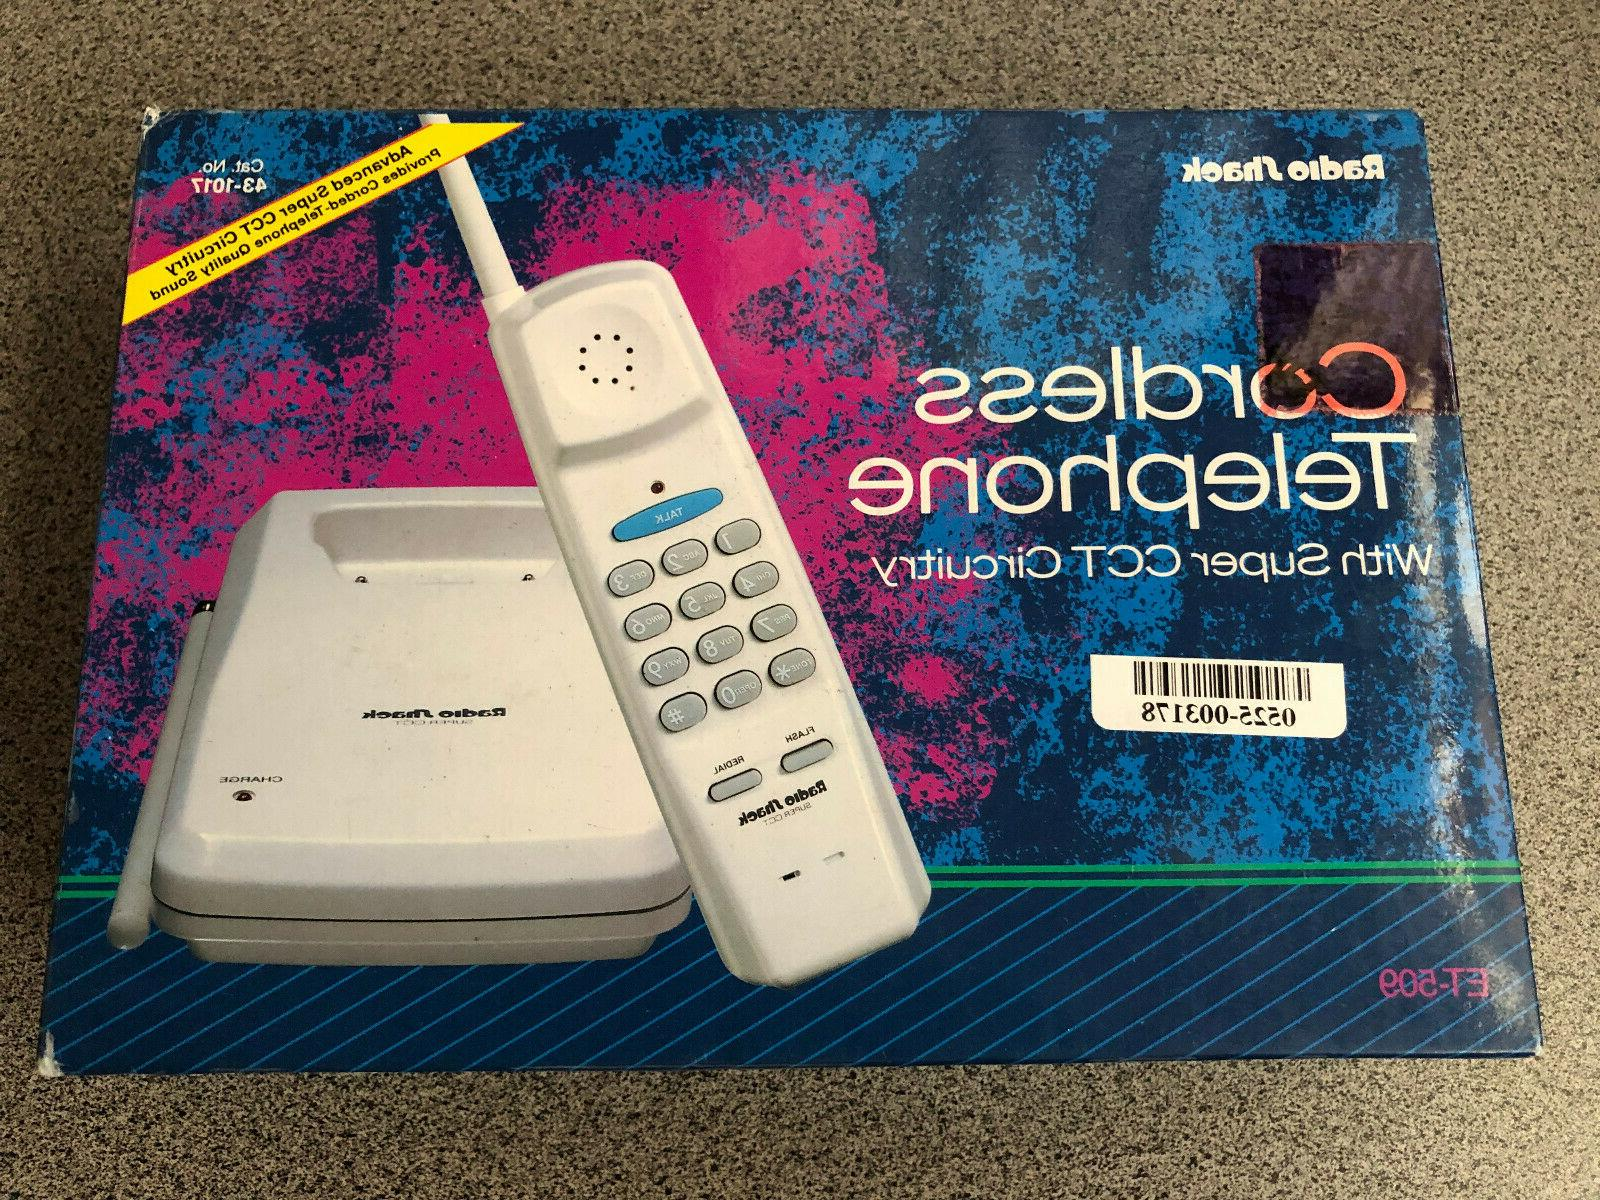 new cordless telephone with super cct circuitry